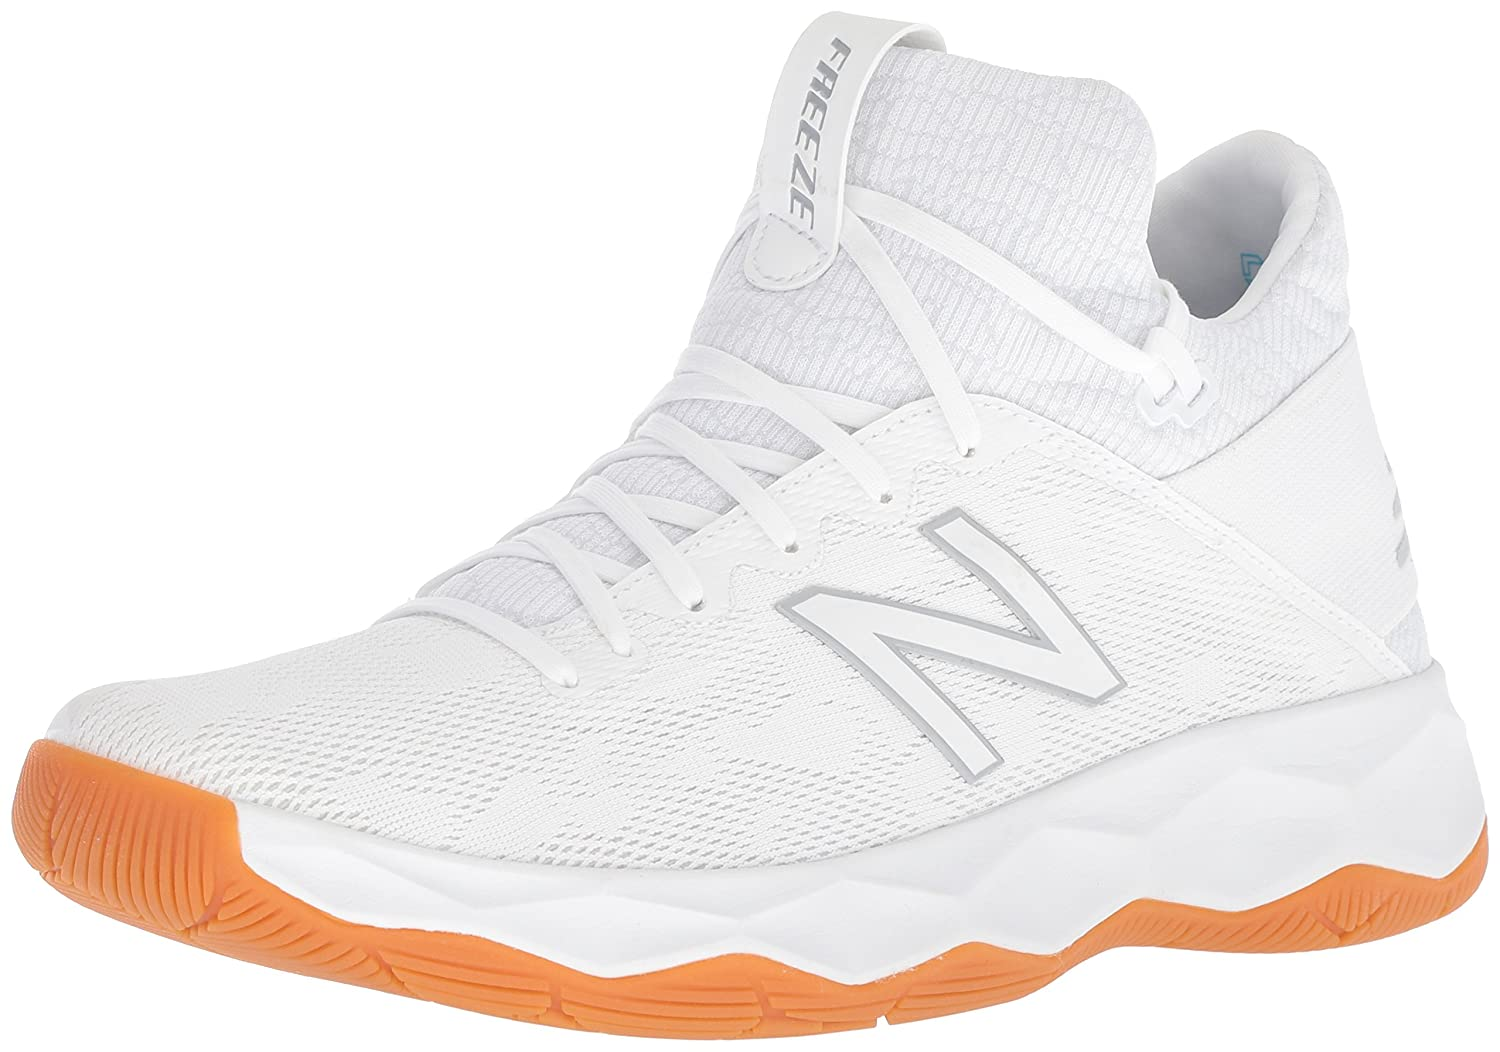 New Balance Men's Freeze V2 Agility Lacrosse Shoe FREEZBW2